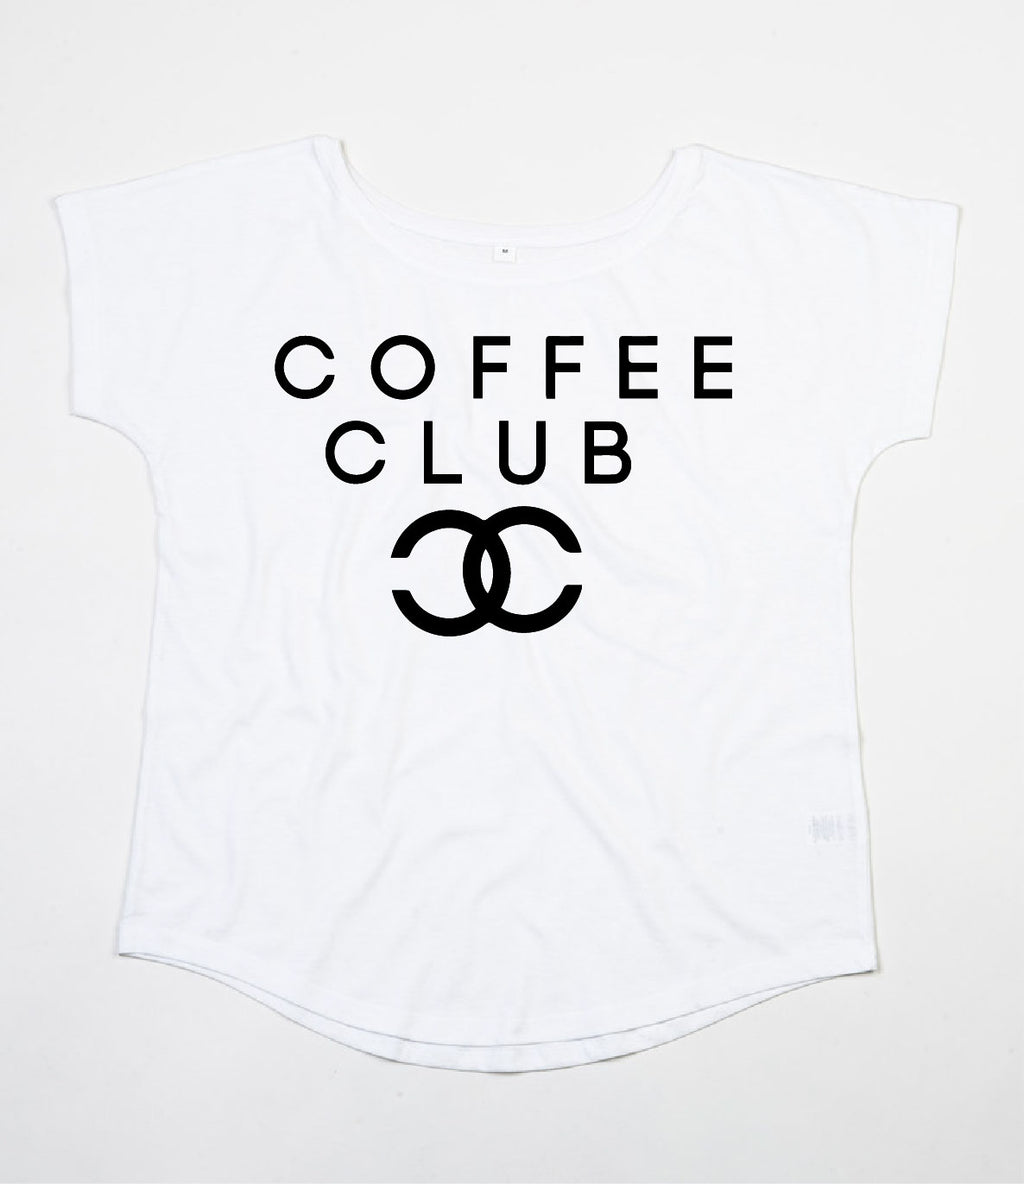 Coffee Club Scoop Neck - Available in Black and White Tees